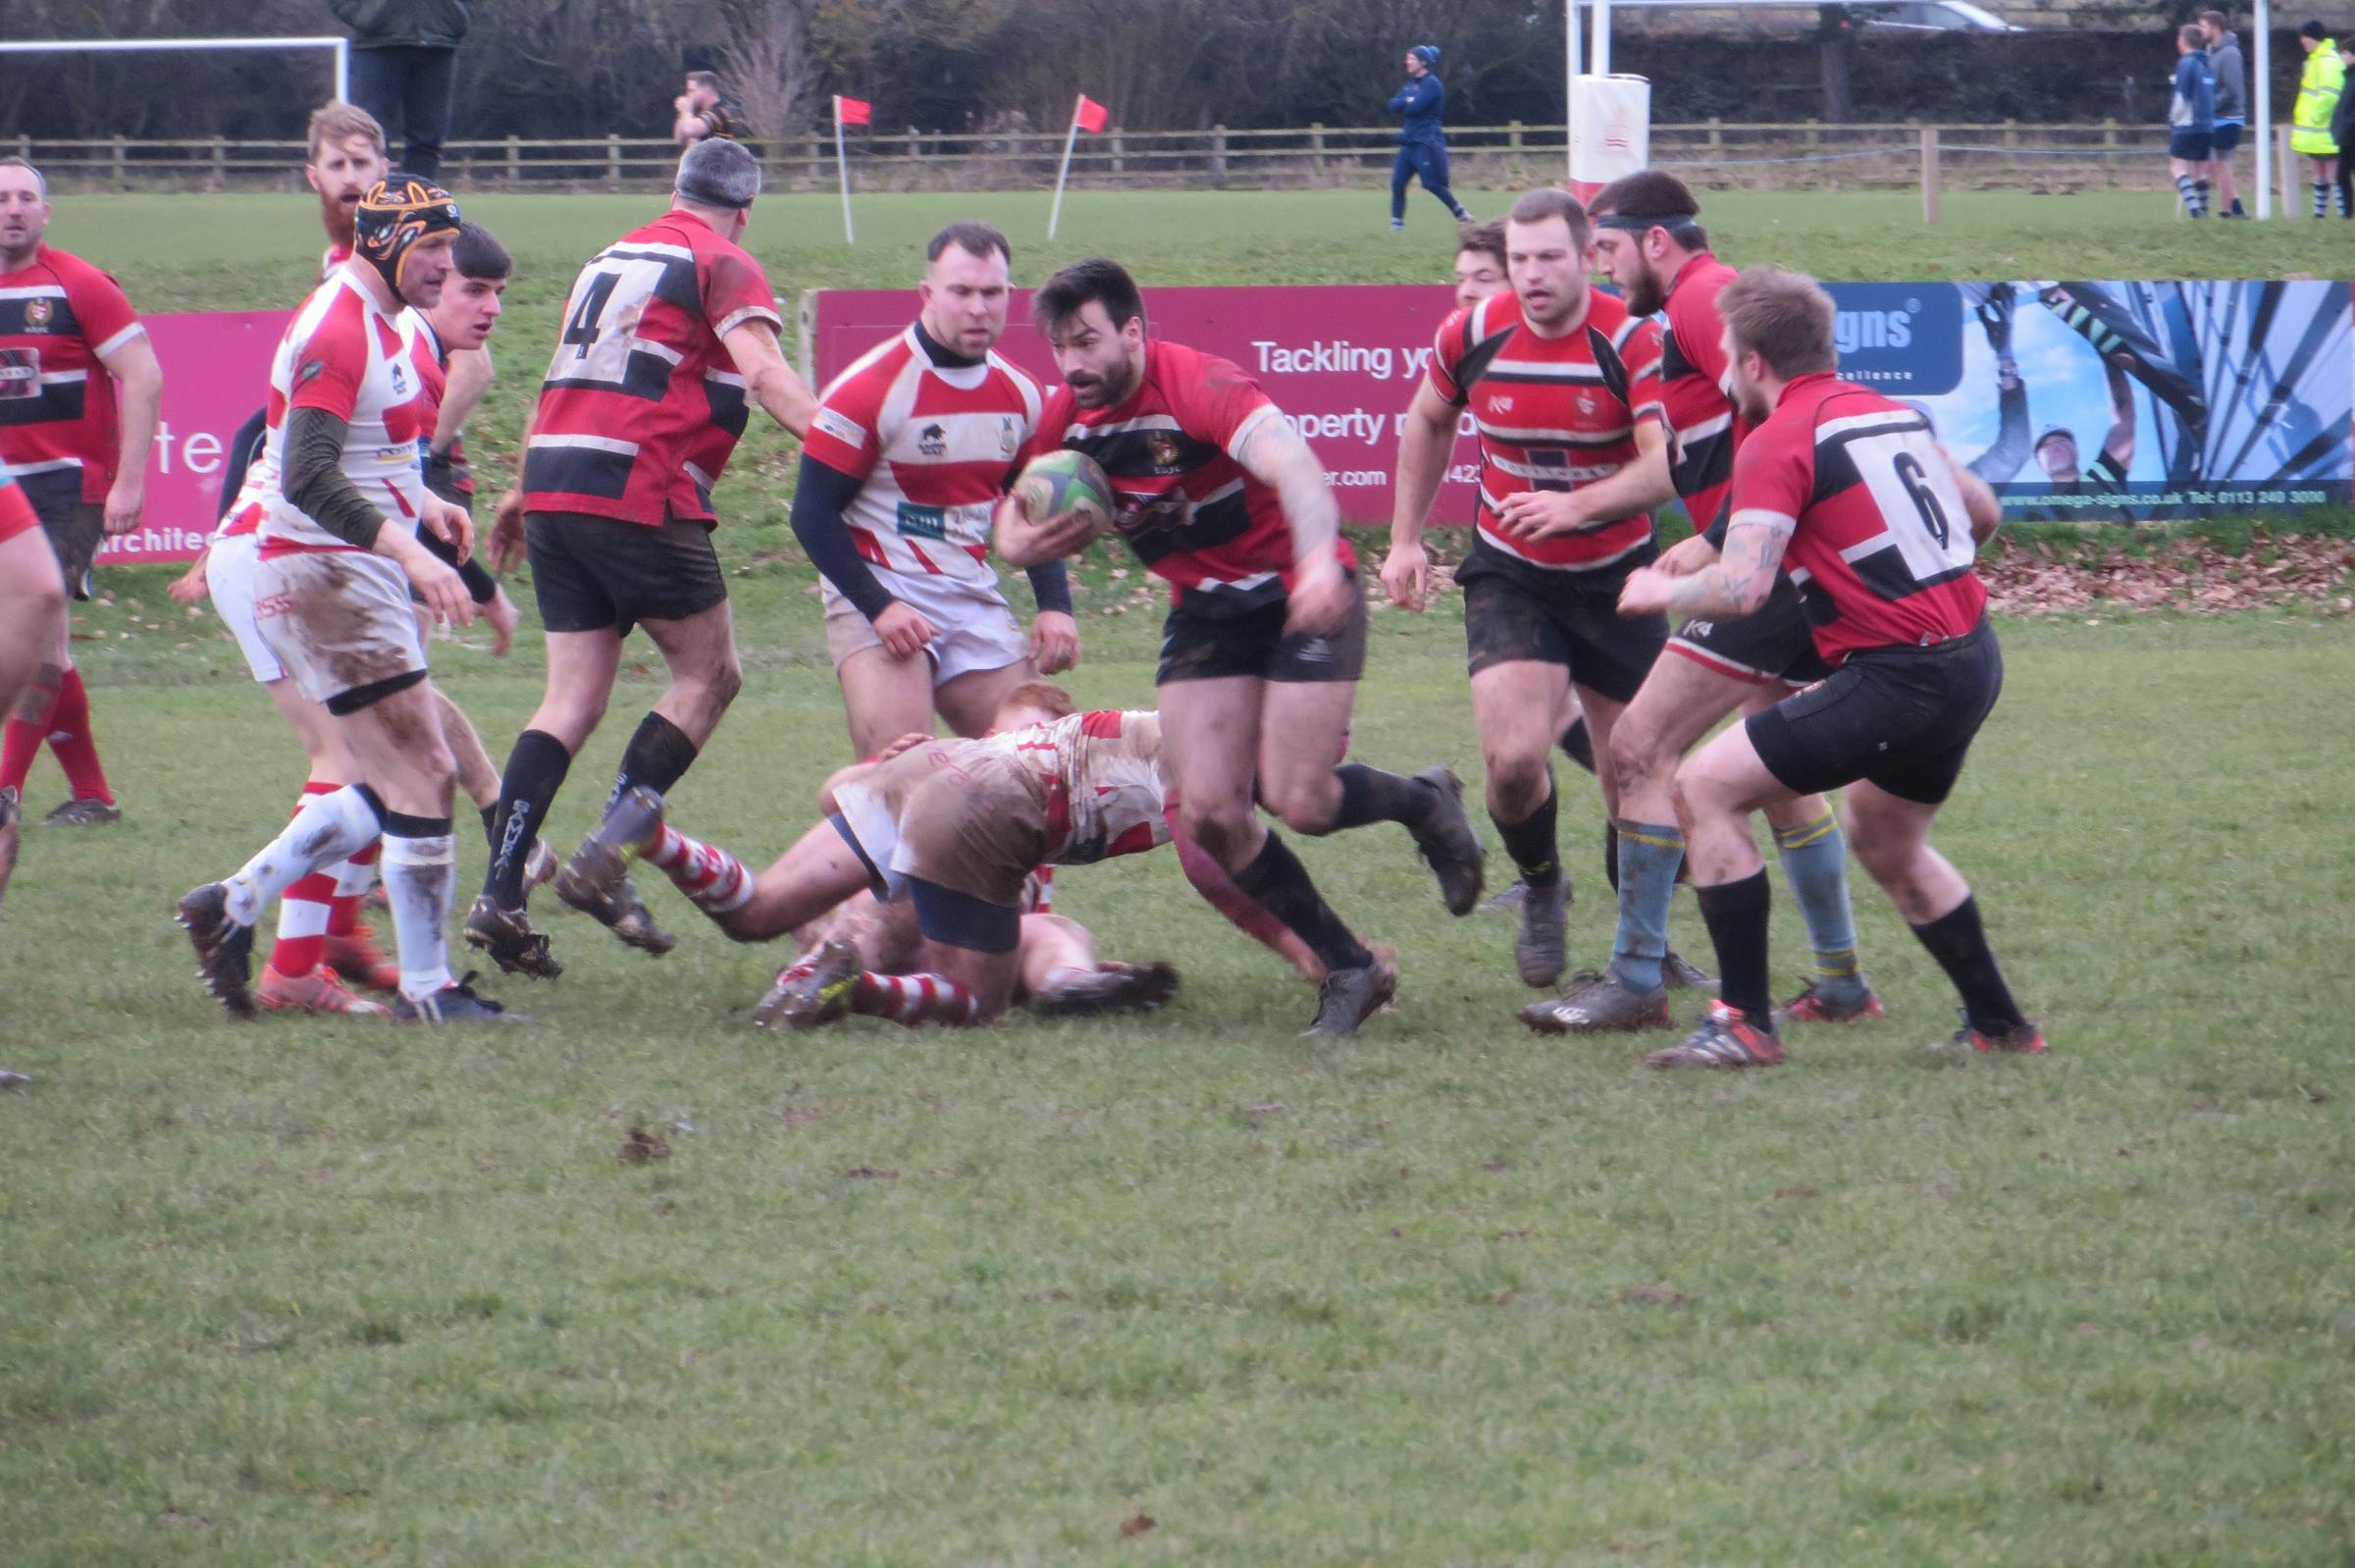 BACK ON THE HORSE: Nestle Rowntree recovered from last week's defeat at Moortown to put Wetherby 3rds to the sword and claim a bonus point. Picture by Kenny Hepworth.